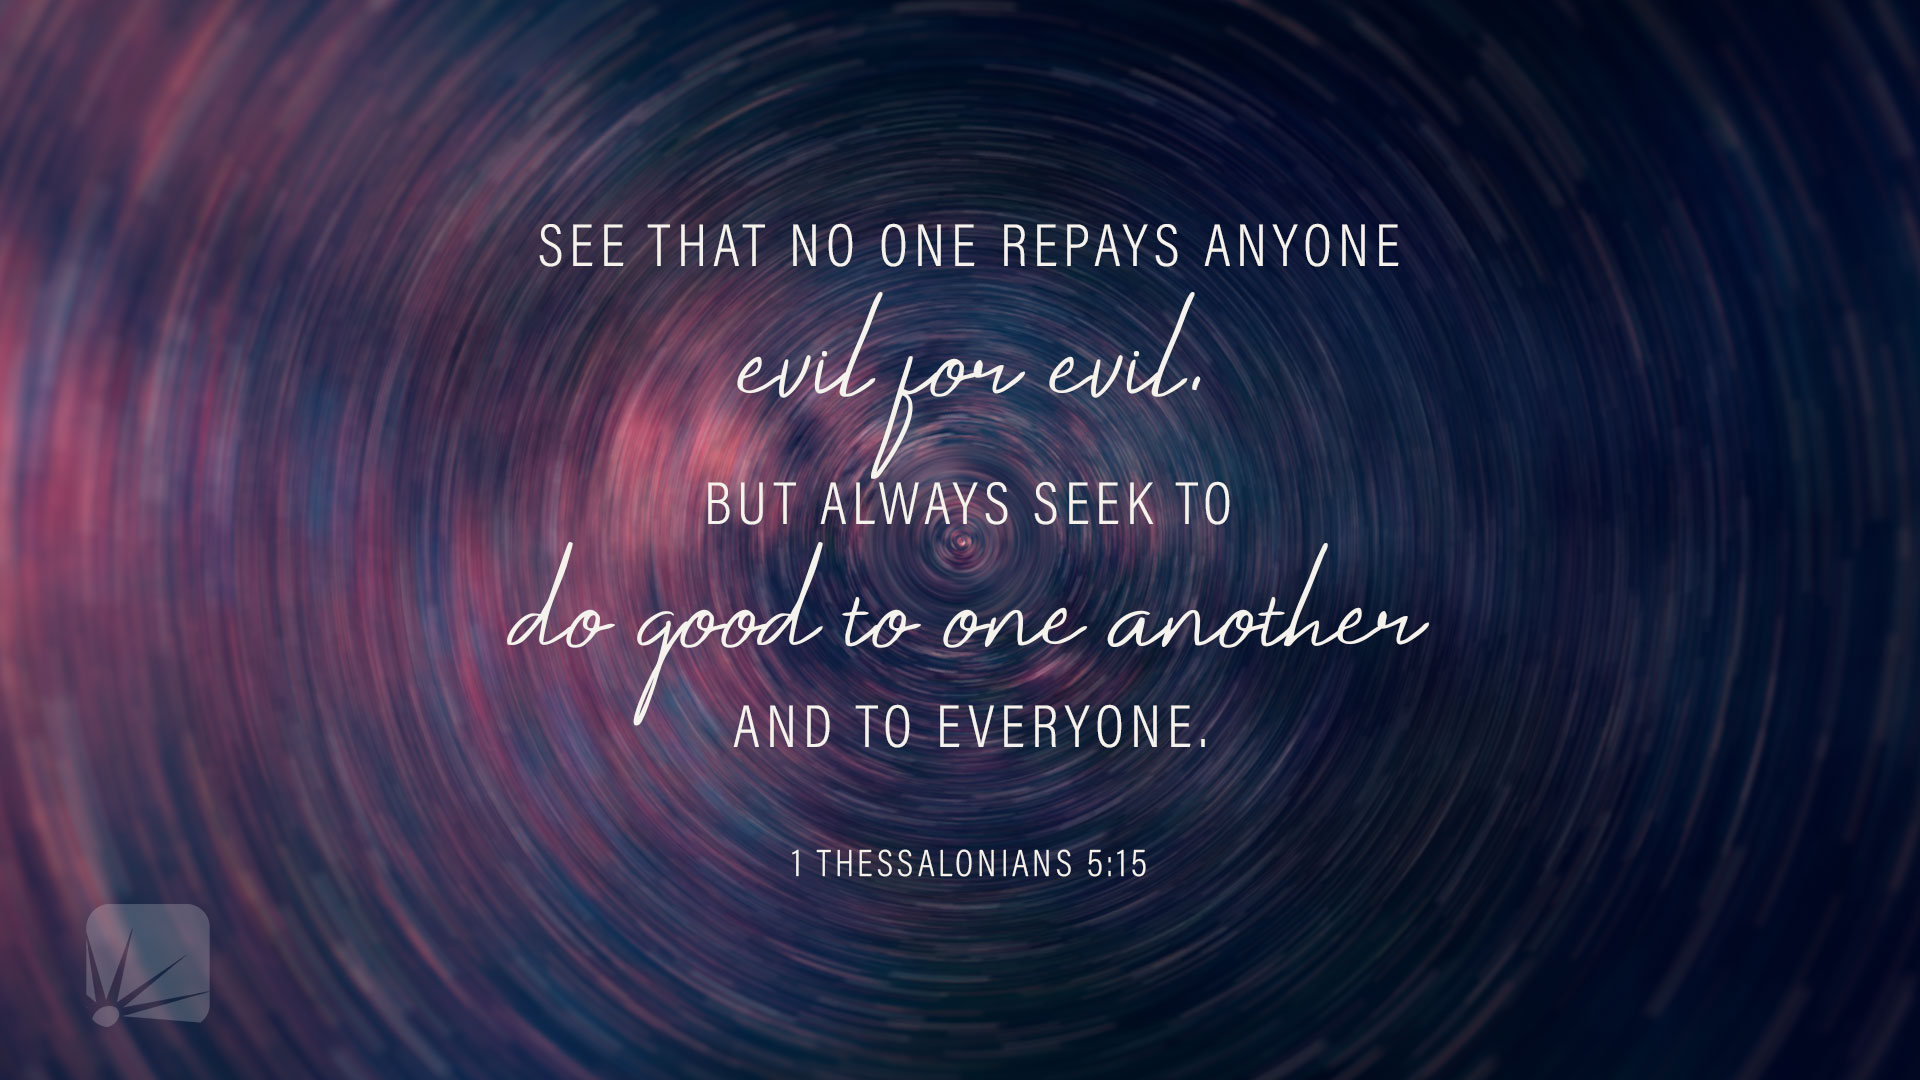 See that no one repays anyone evil for evil, but always seek to do good to one another and to everyone.